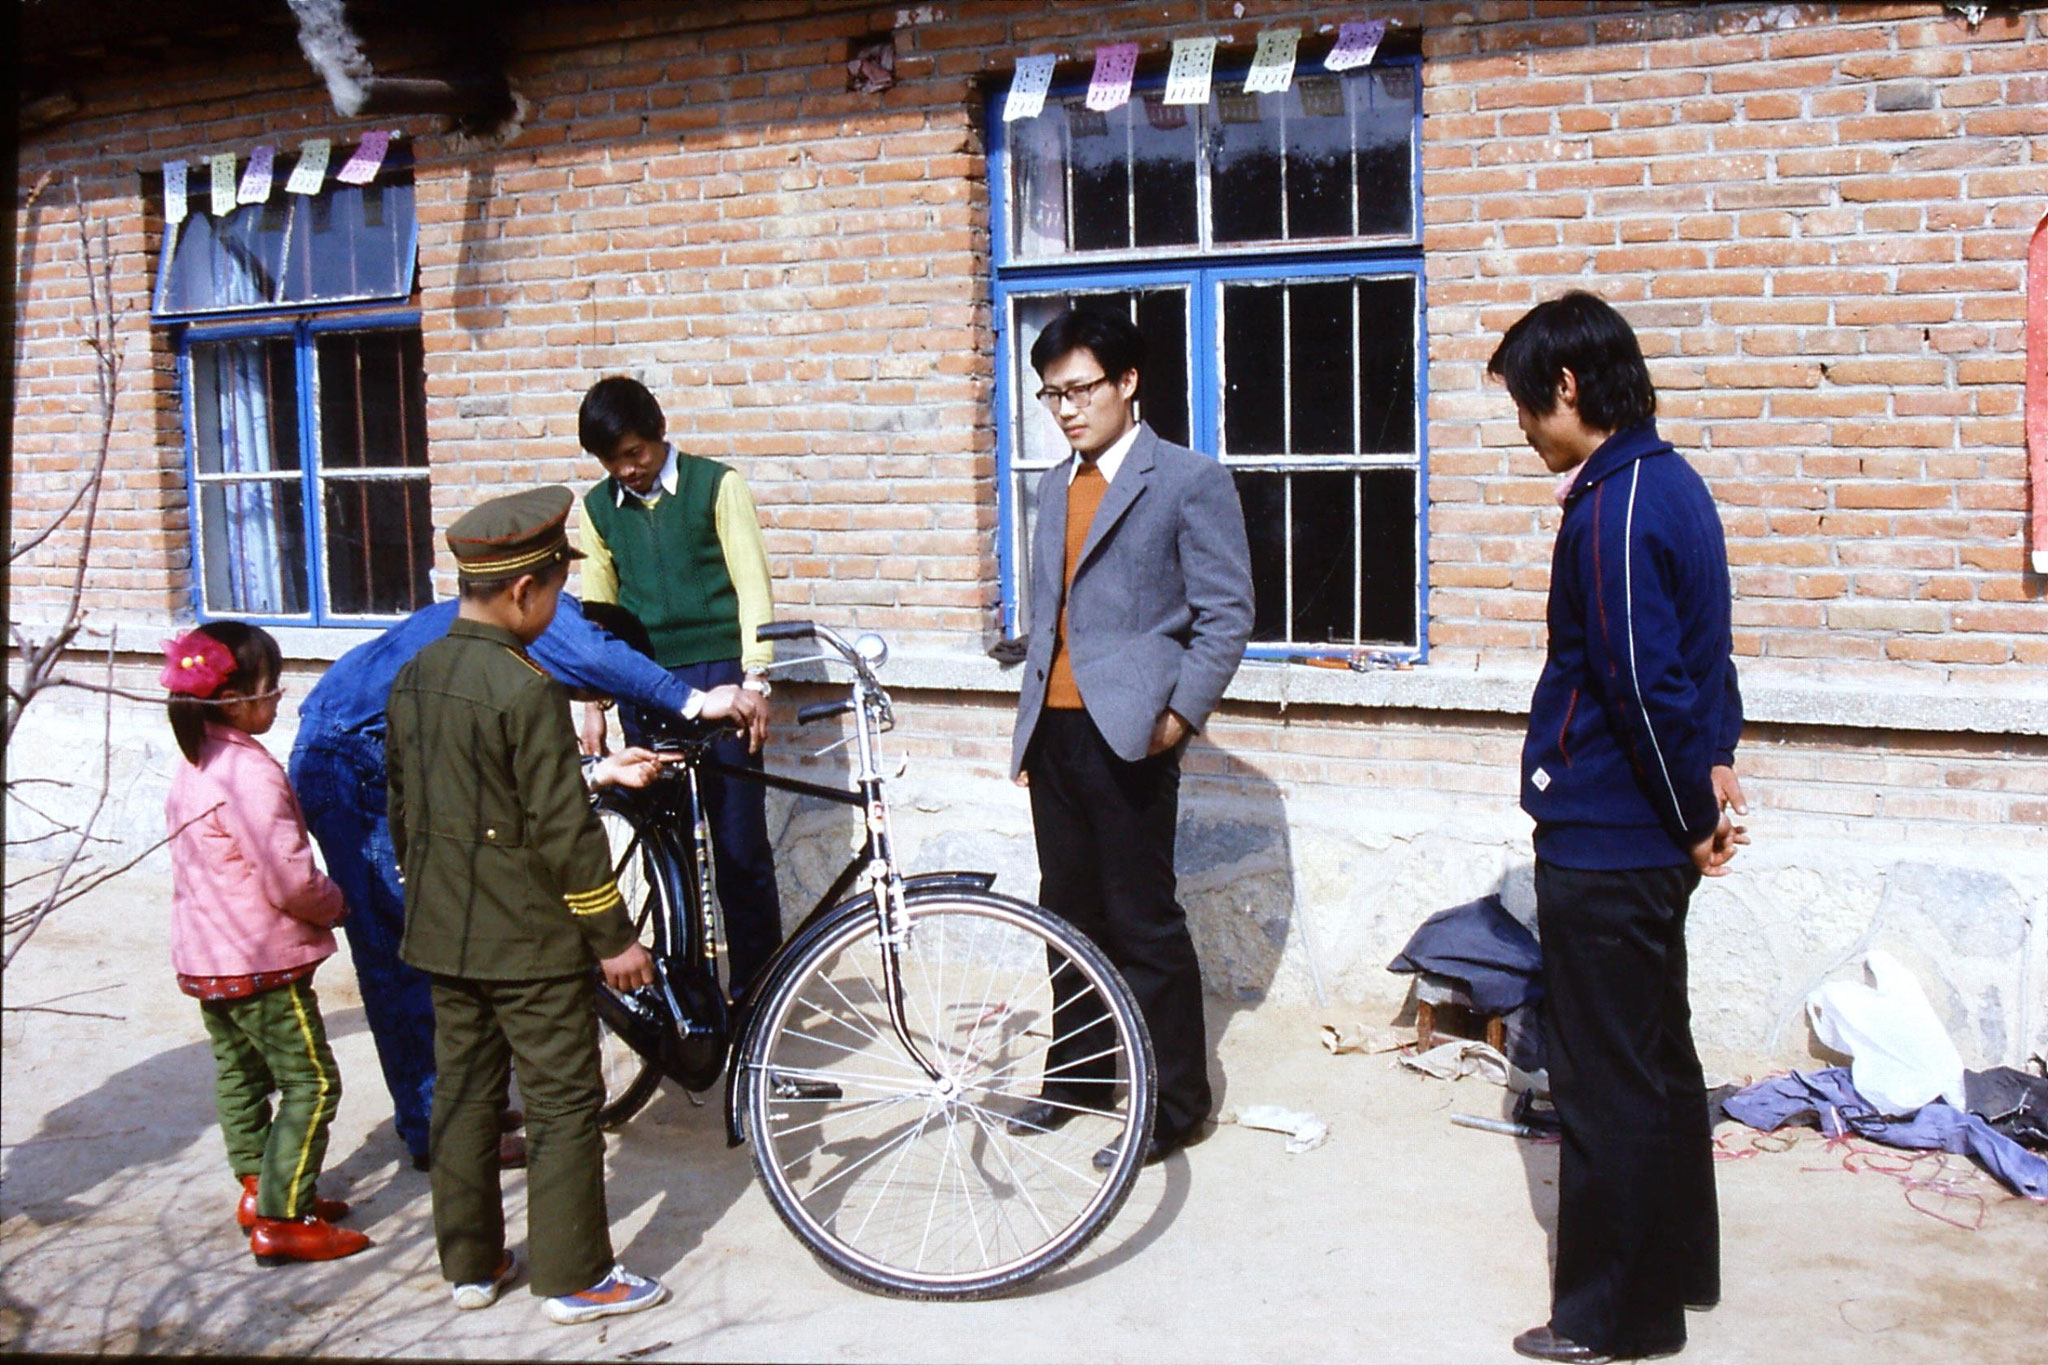 15/2/1989: 10: Liu Bo's village, assembled bicycle